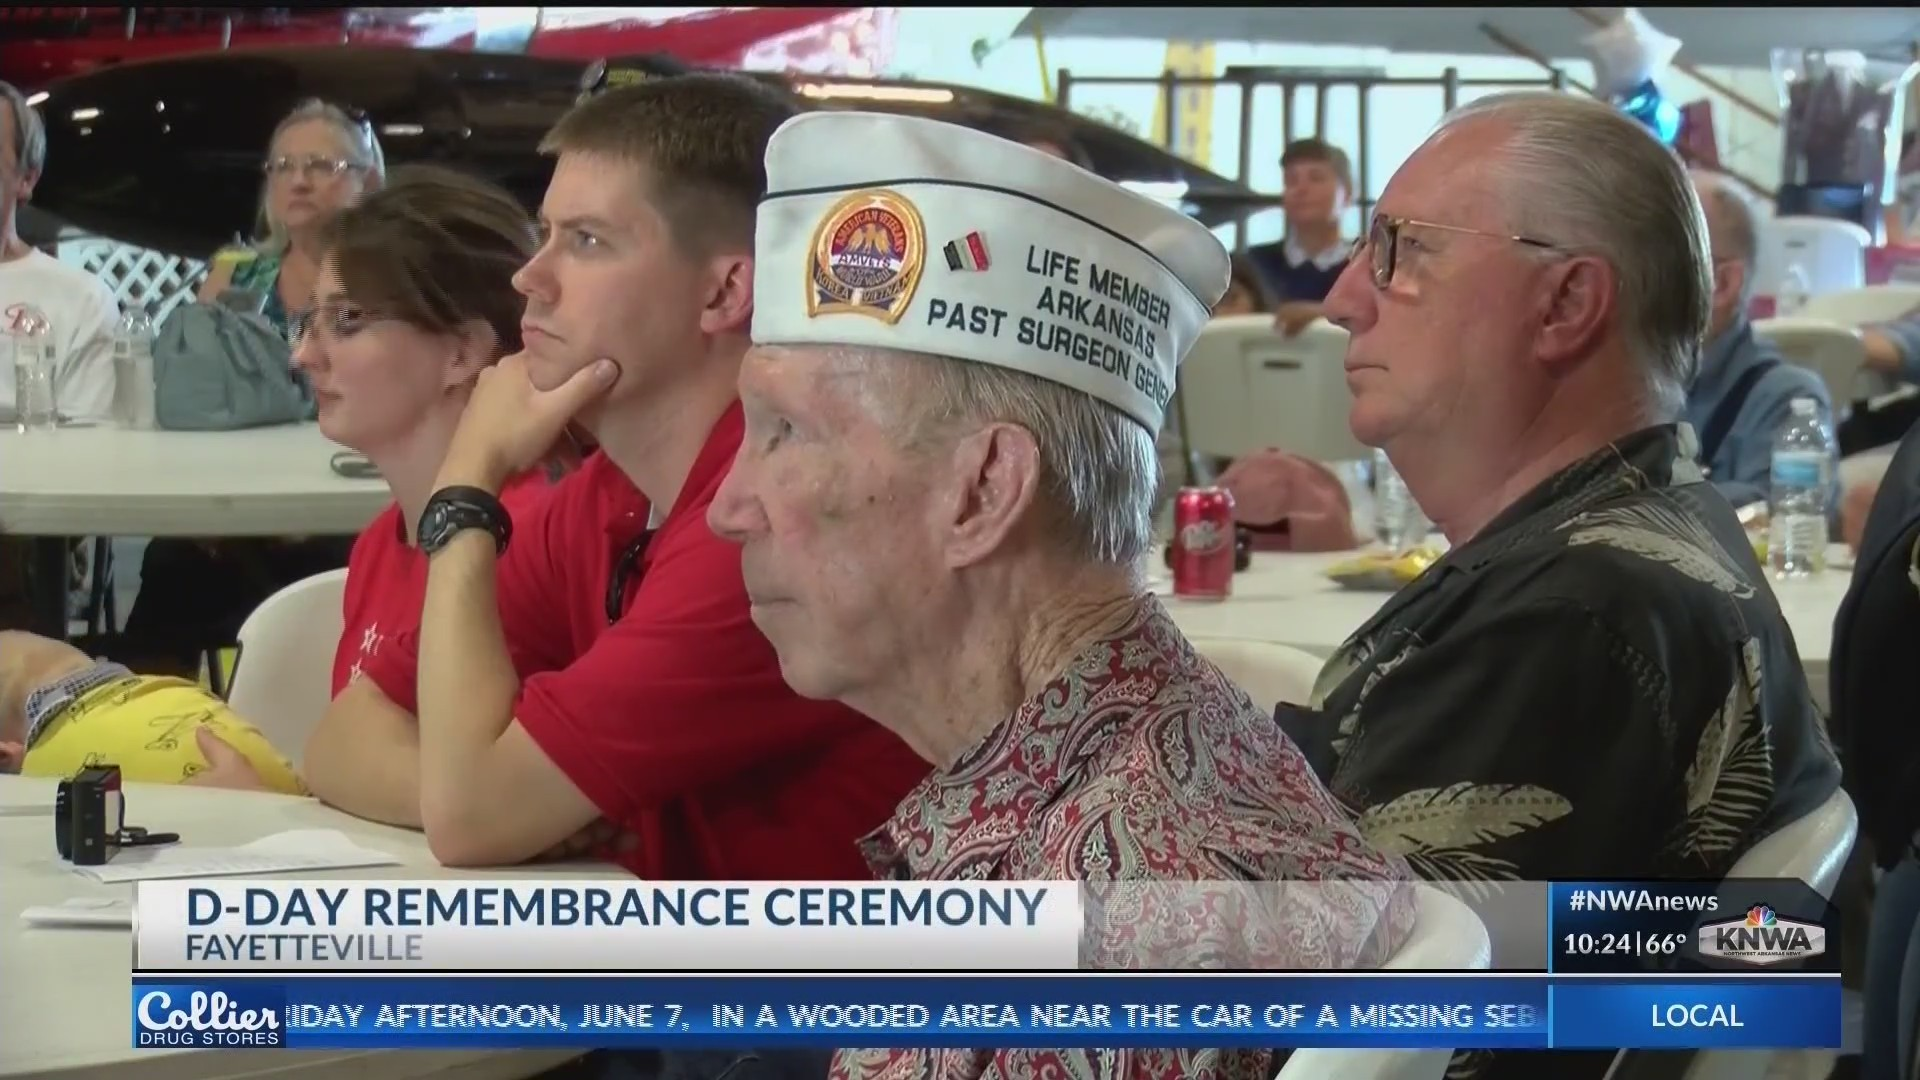 Arkansas Air and Military Museum holds D-Day remembrance ceremony (KNWA)